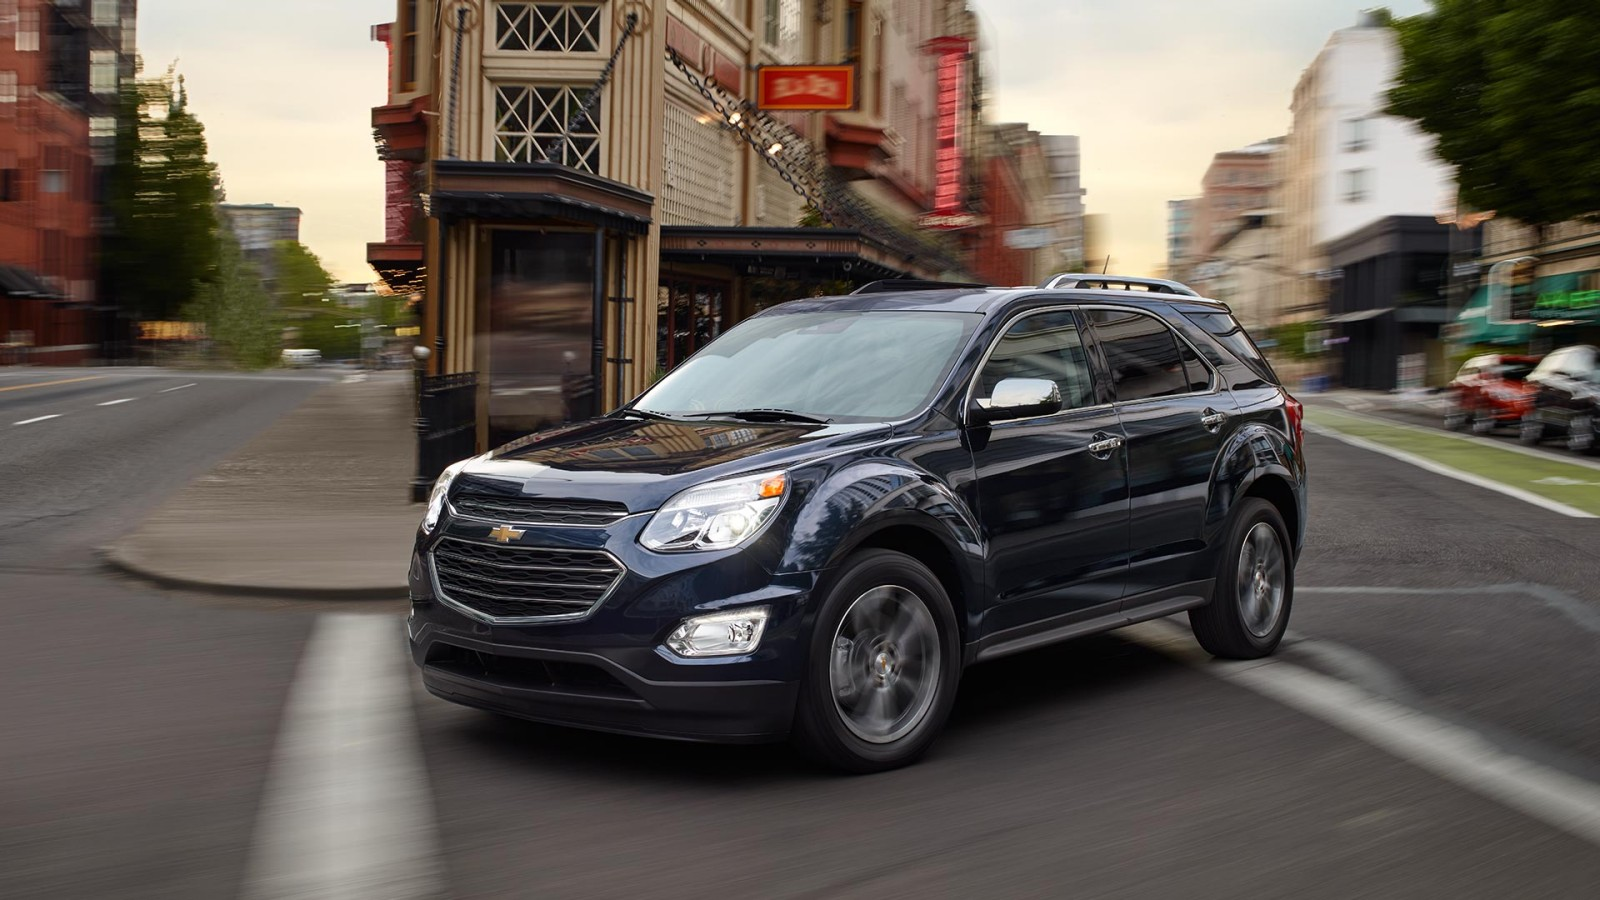 2017 Chevy Equinox For Sale Near Boardman, OH